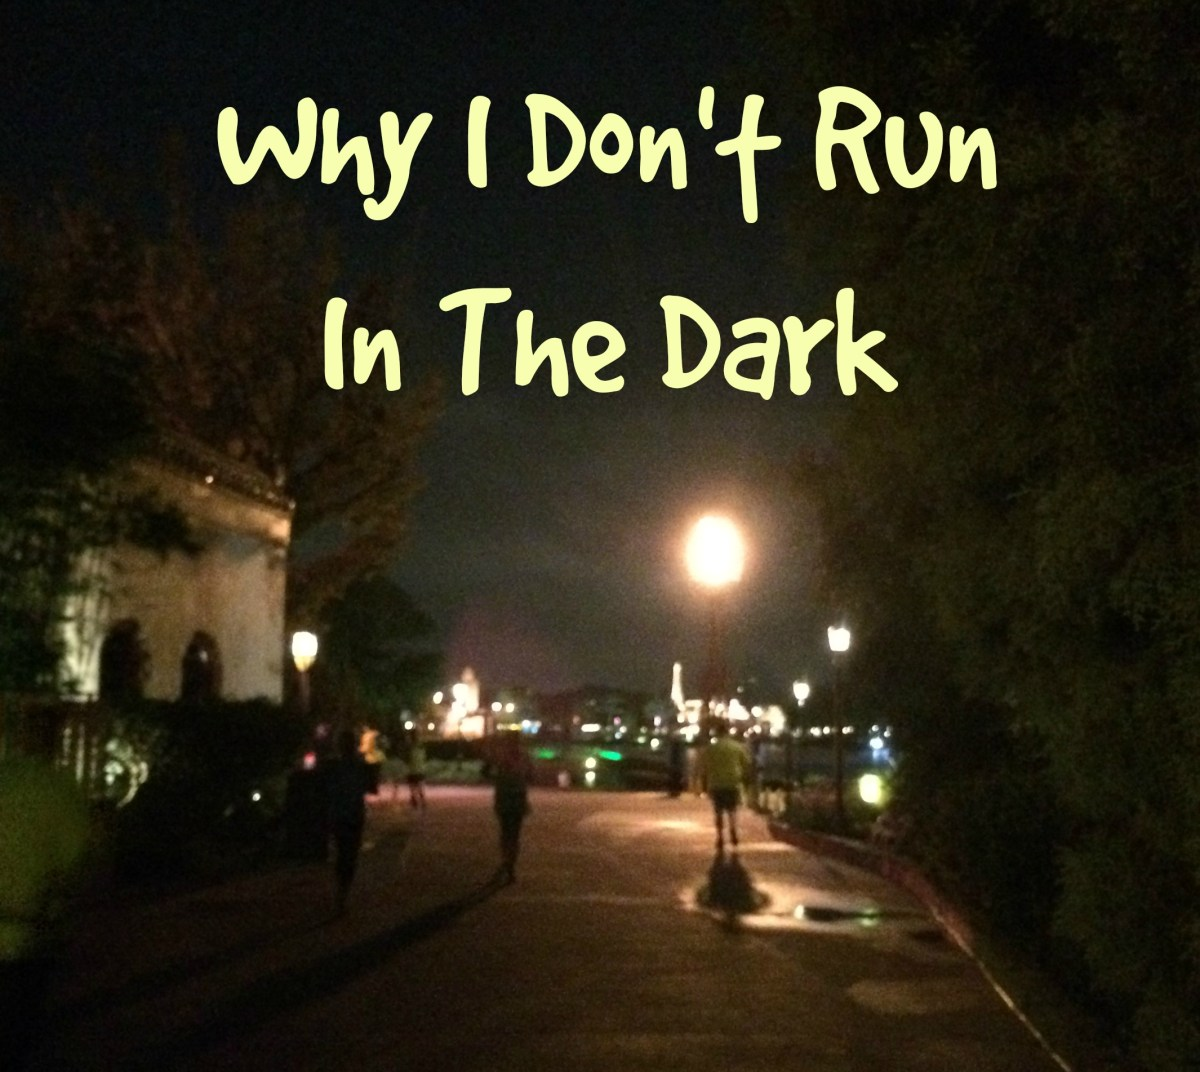 TotR: Why I Don't Run in the Dark